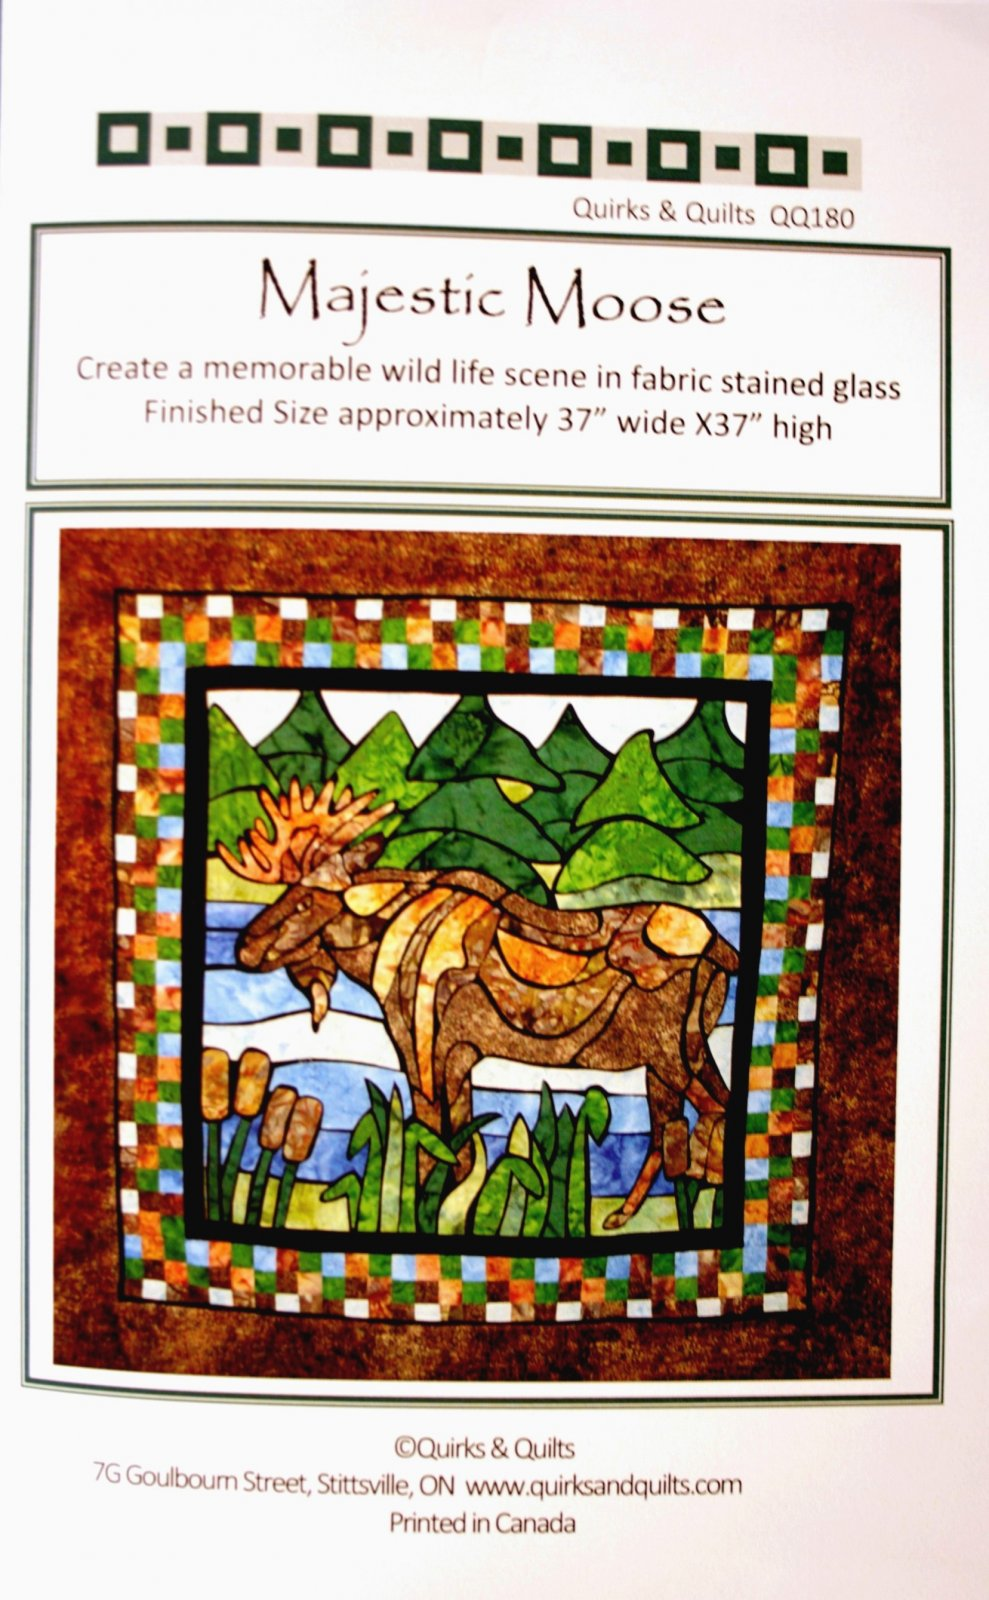 Quirks and Quilts Majestic Moose QQ180pa